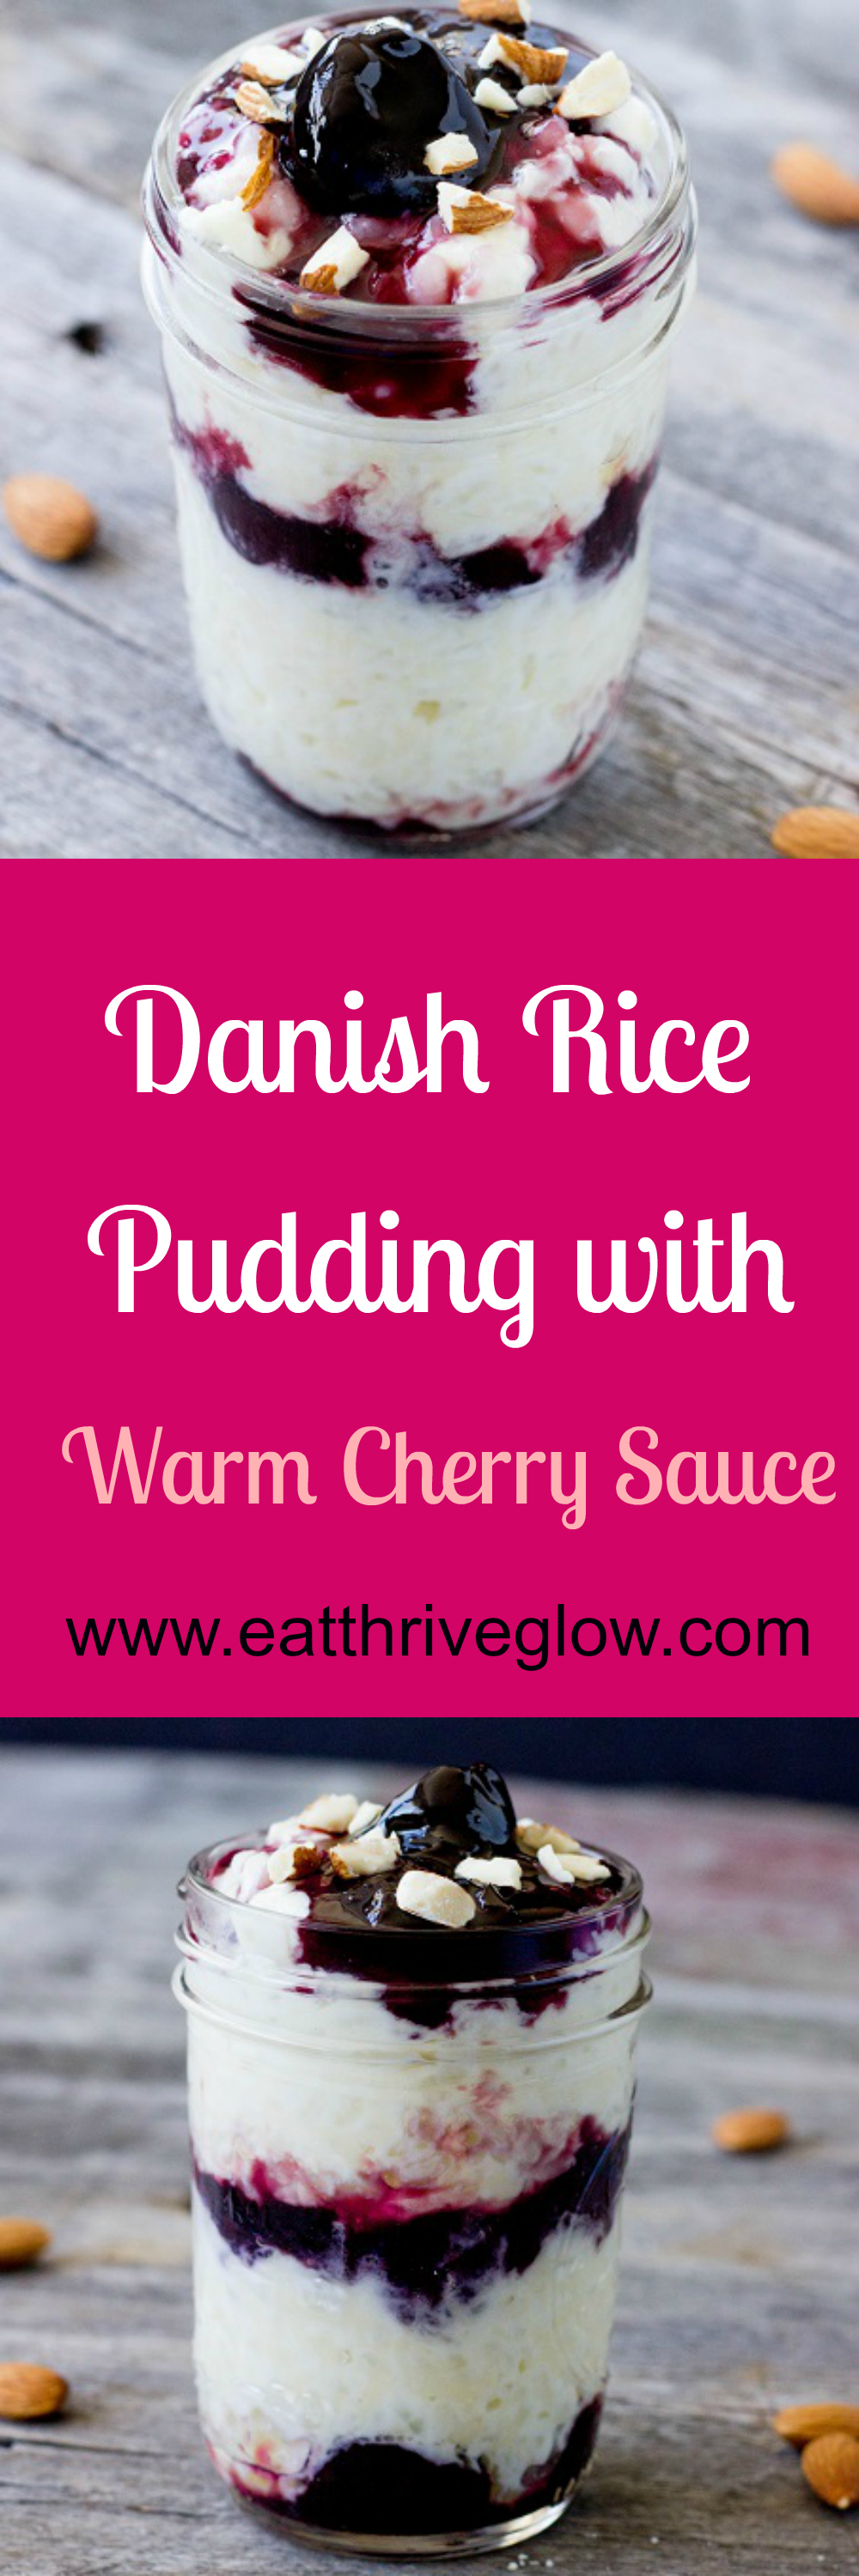 Danish Rice Pudding with Warm Cherry Sauce - Eat Thrive Glow